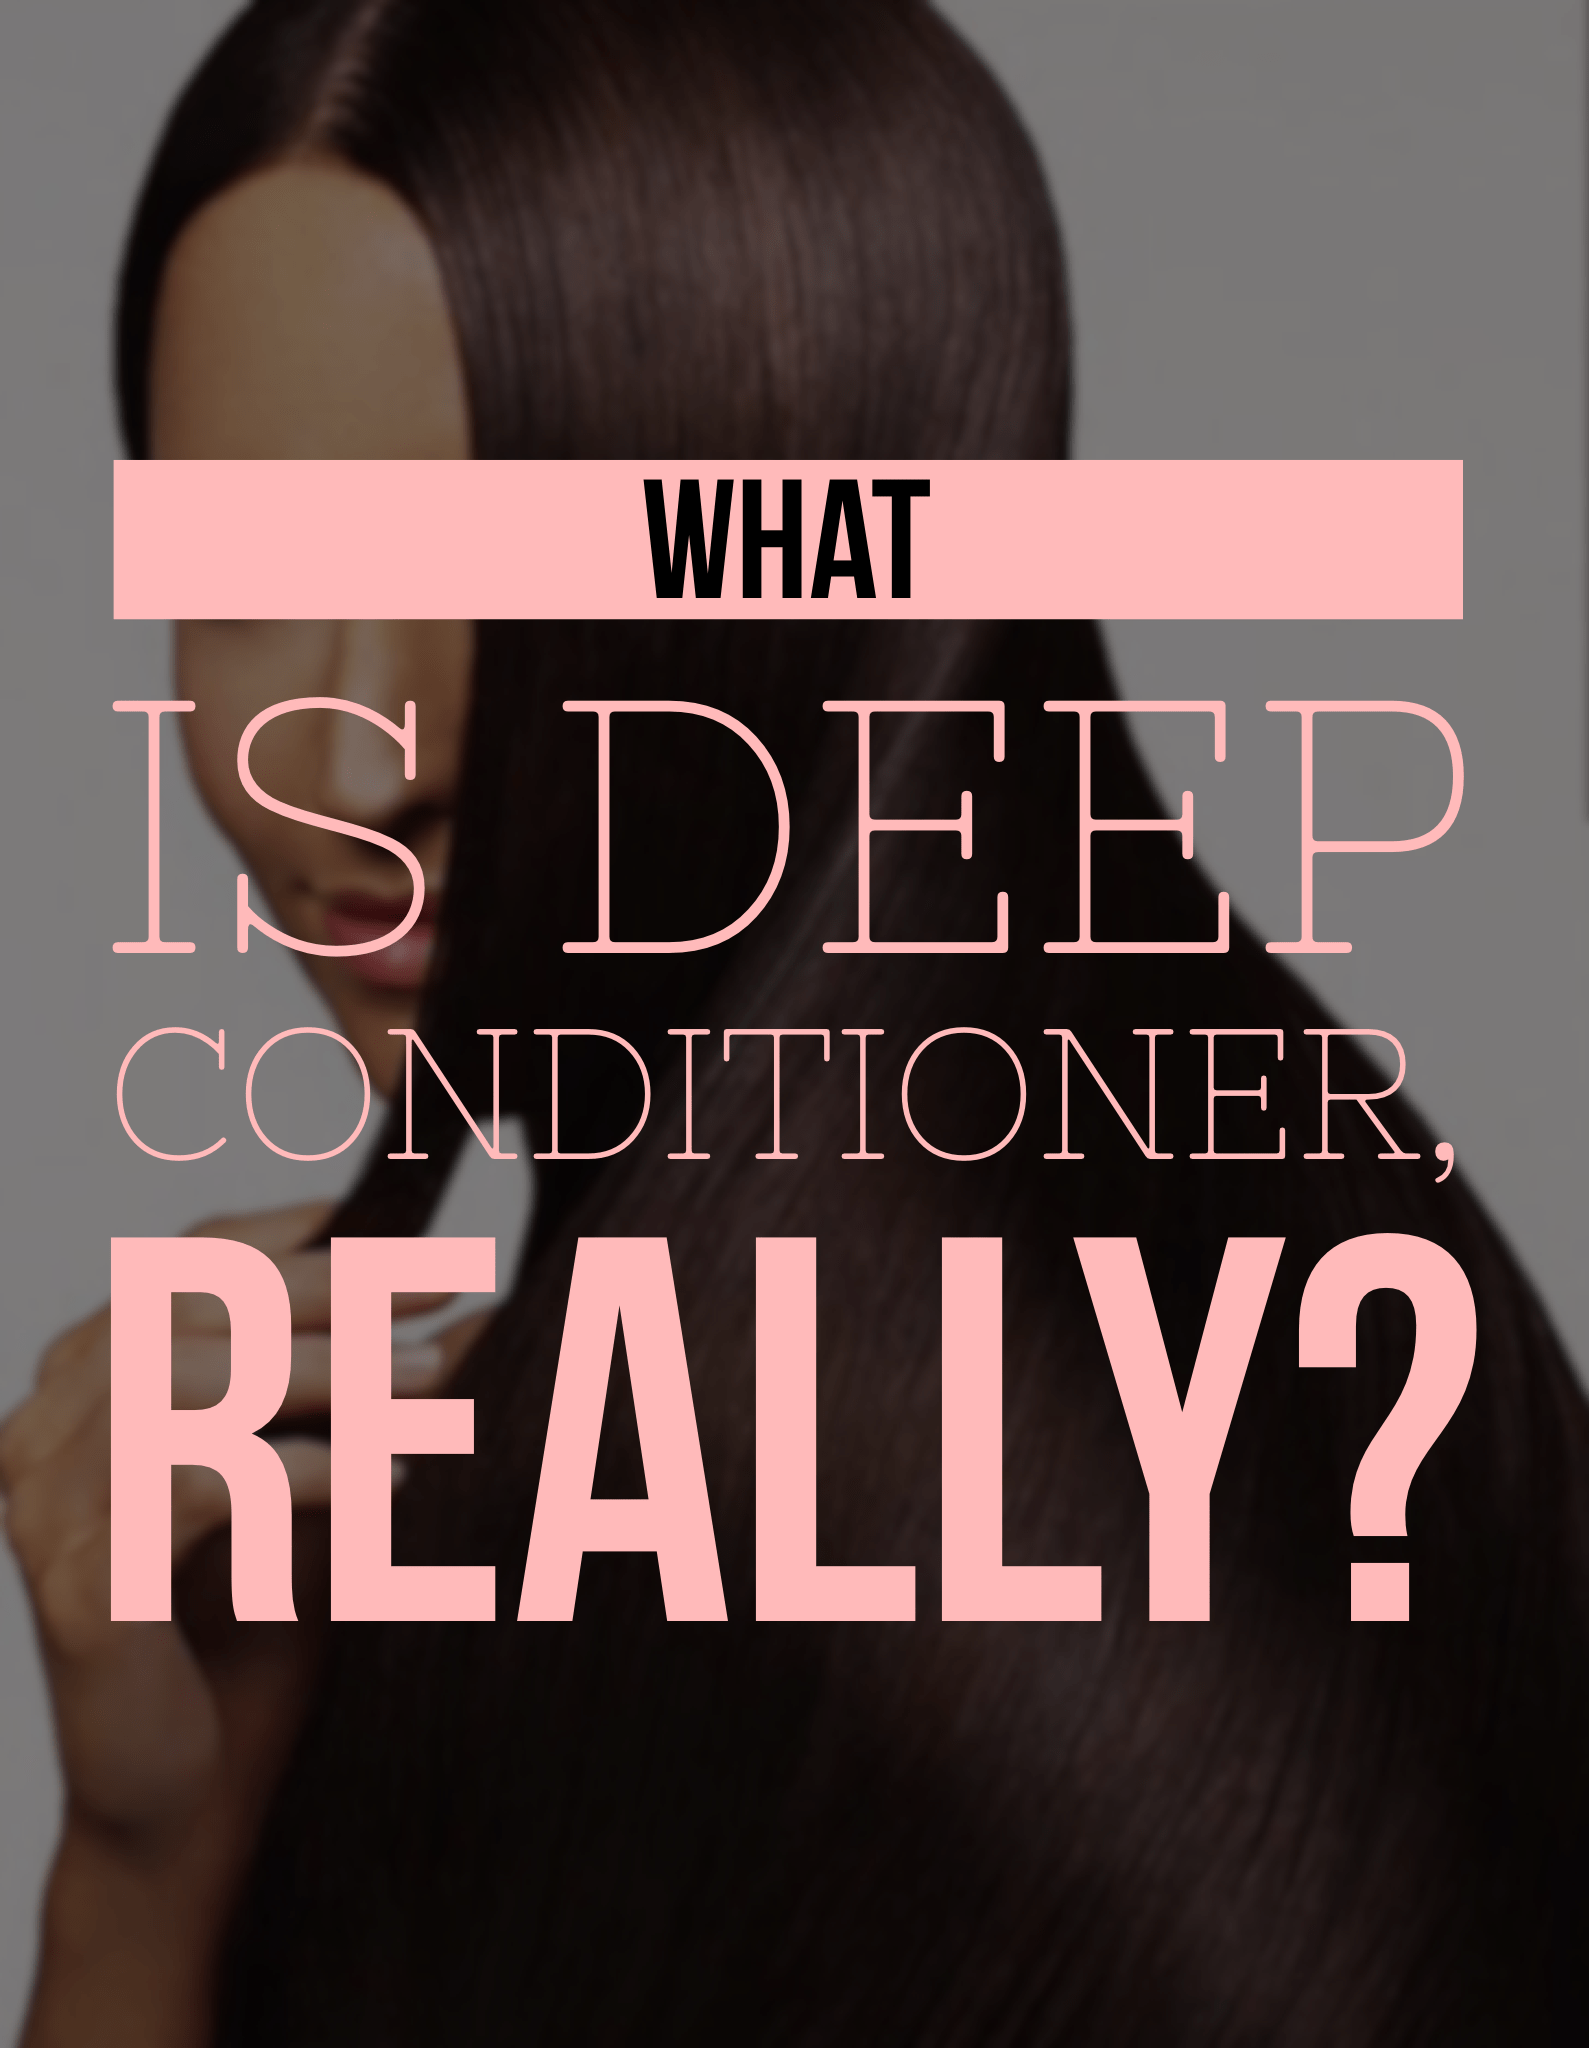 What differentiates deep conditioner from good ol' regular conditioner? Learn all about deep conditioner and how it works!